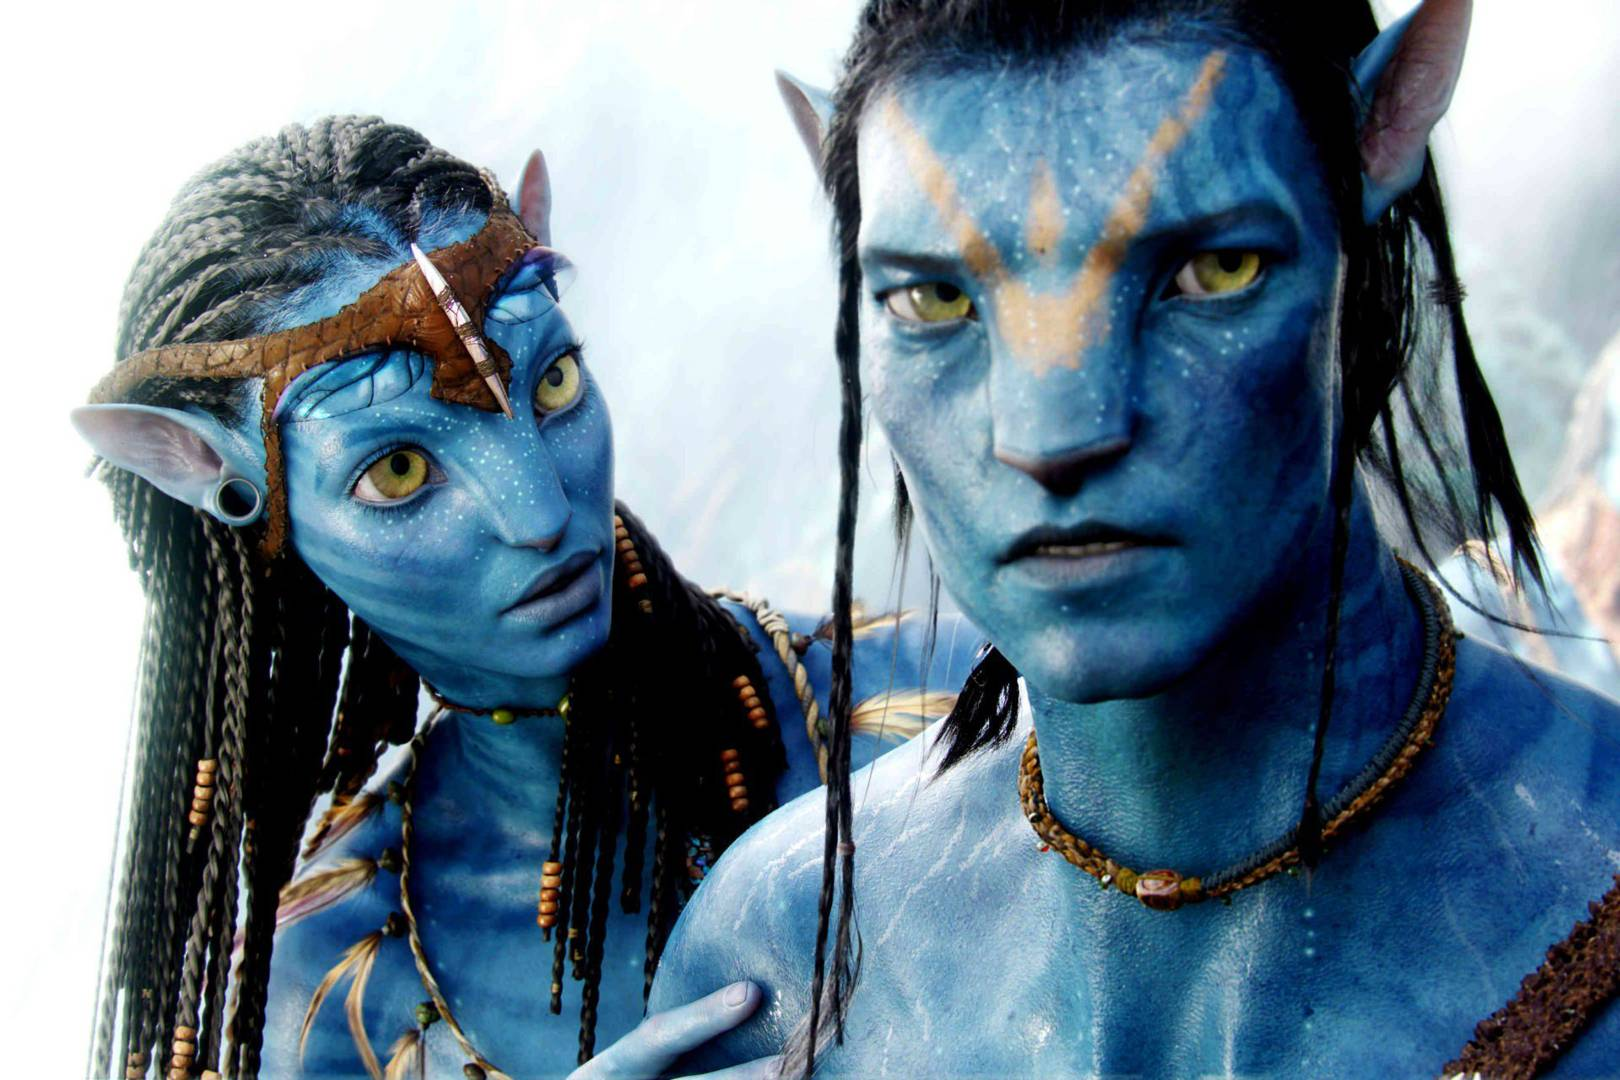 Avatar Alien Porn avatar will have four sequels, says james cameron | wired uk